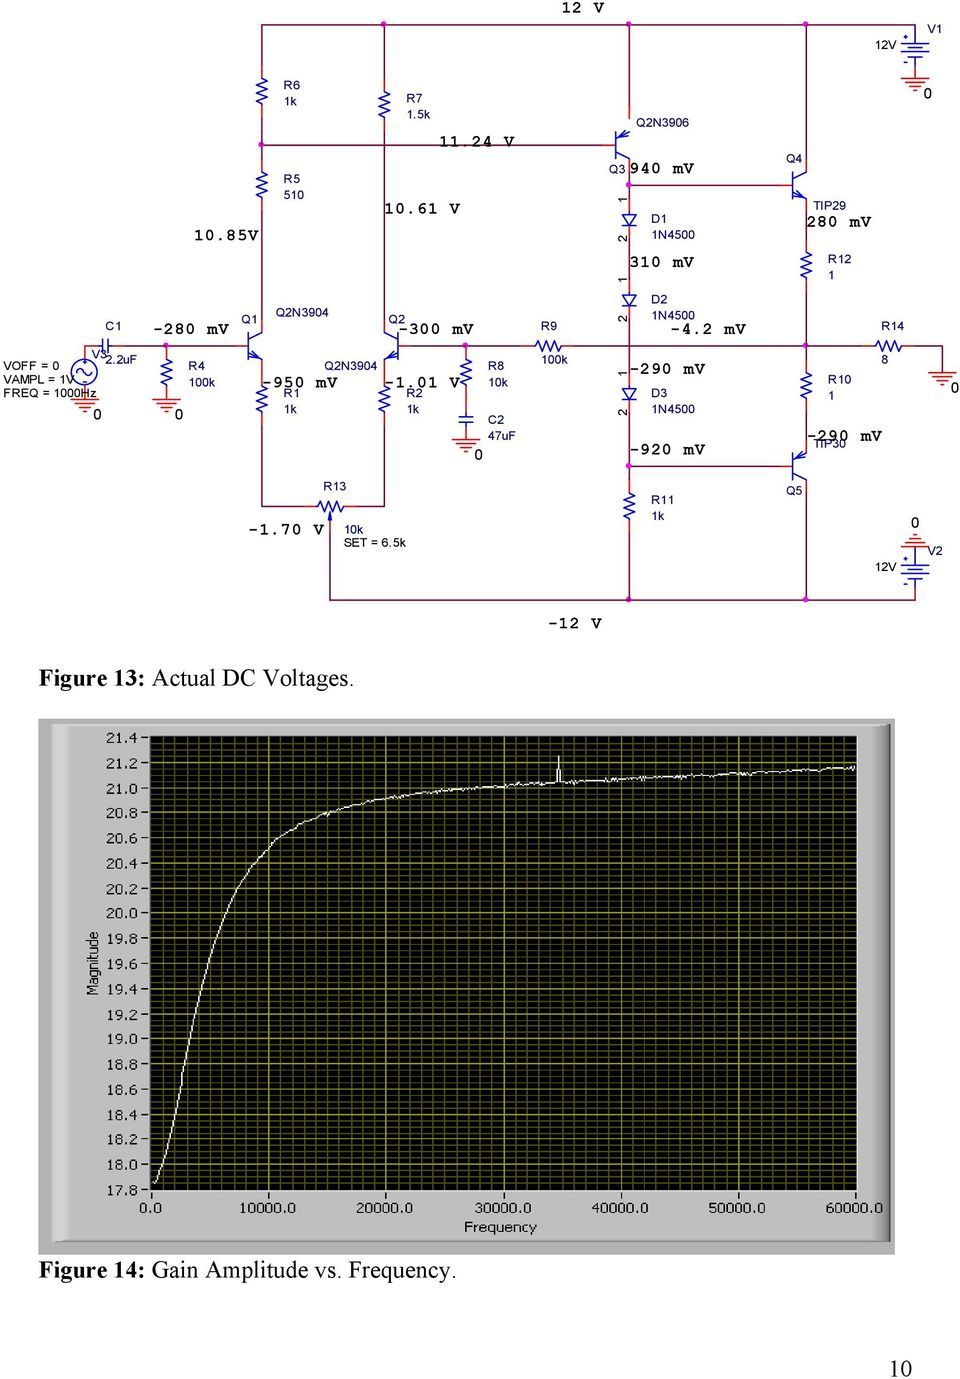 Design And Build Your Own Audio Amplifier Pdf Strength Meter Using Ic741 2 Mv R4 V3 22uf Voff Vampl V Freq Hz